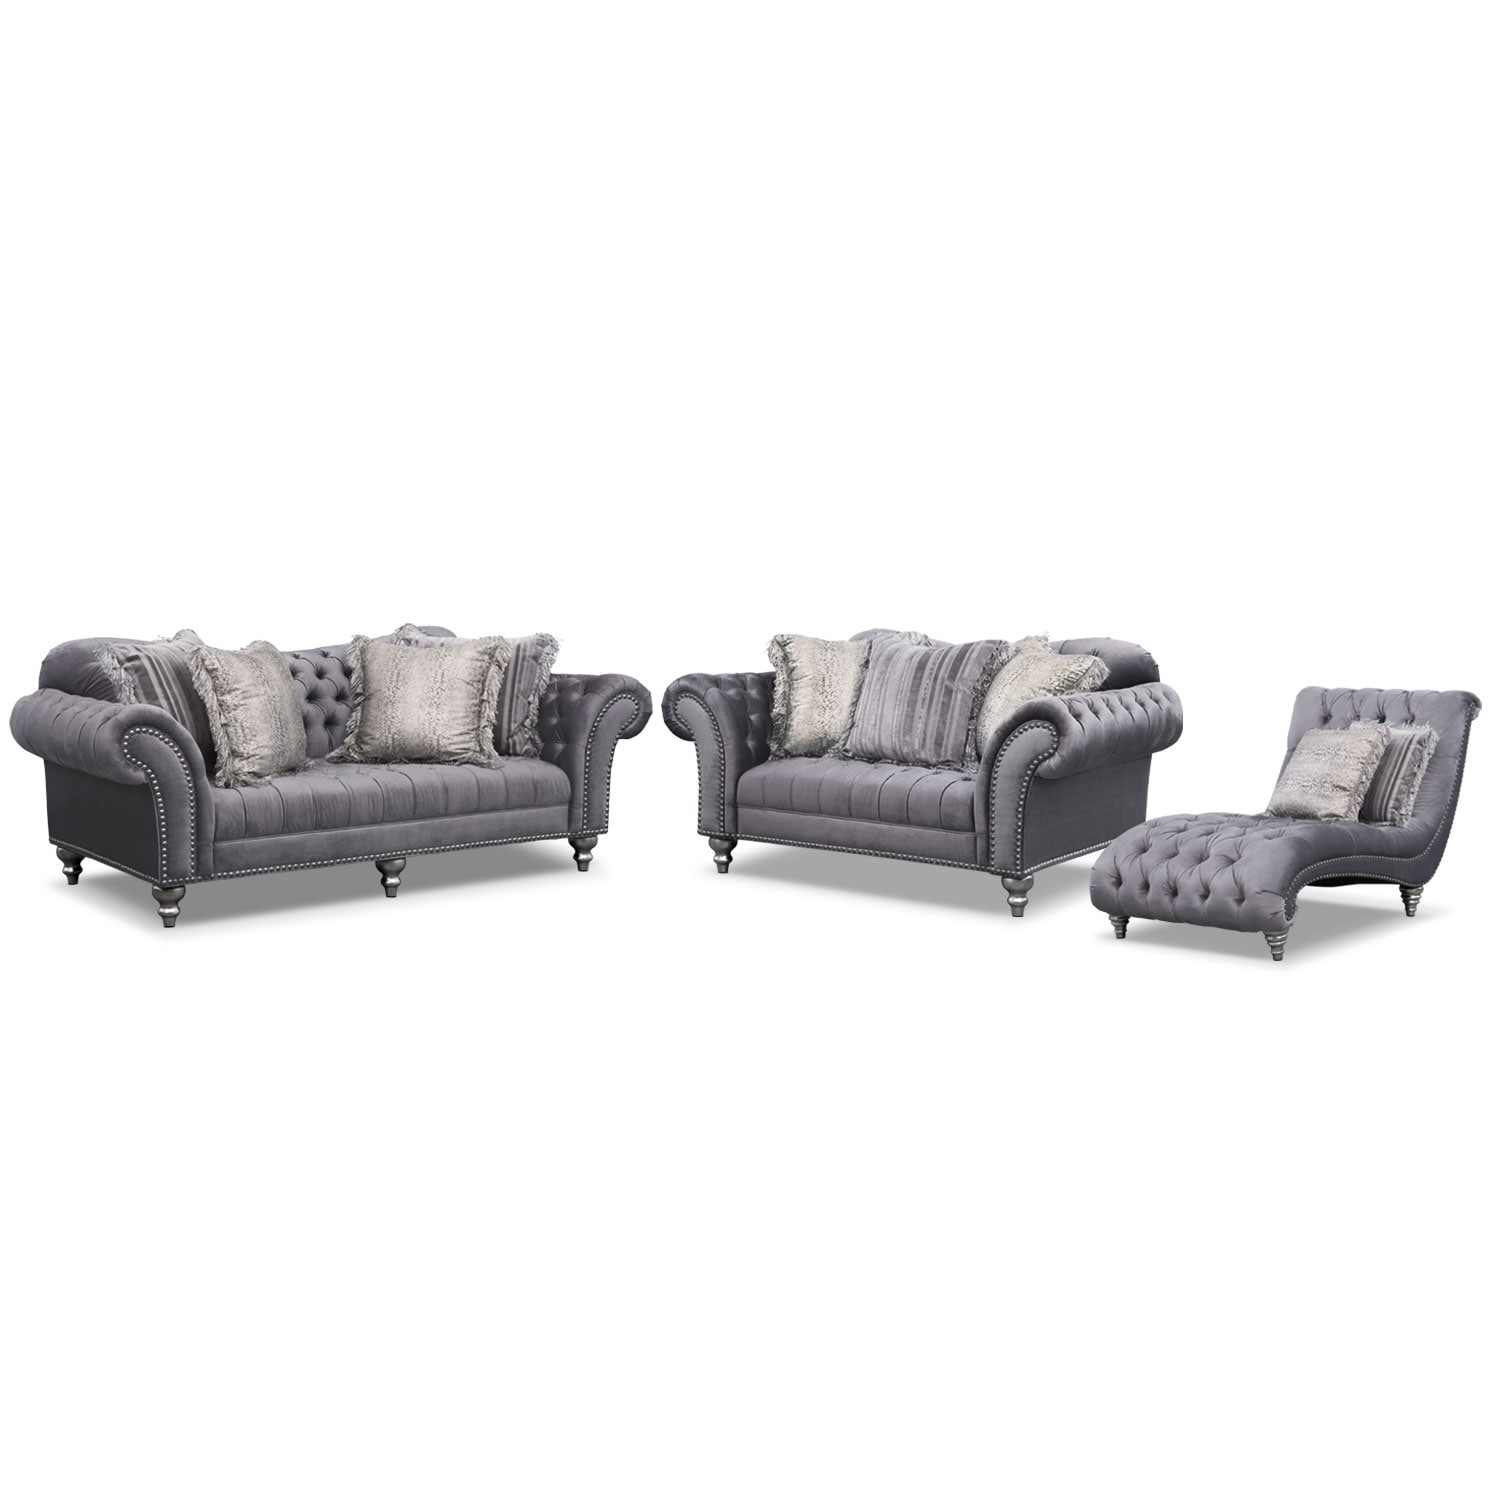 The Brittney Living Room Collection - Gray | Value City Furniture ...